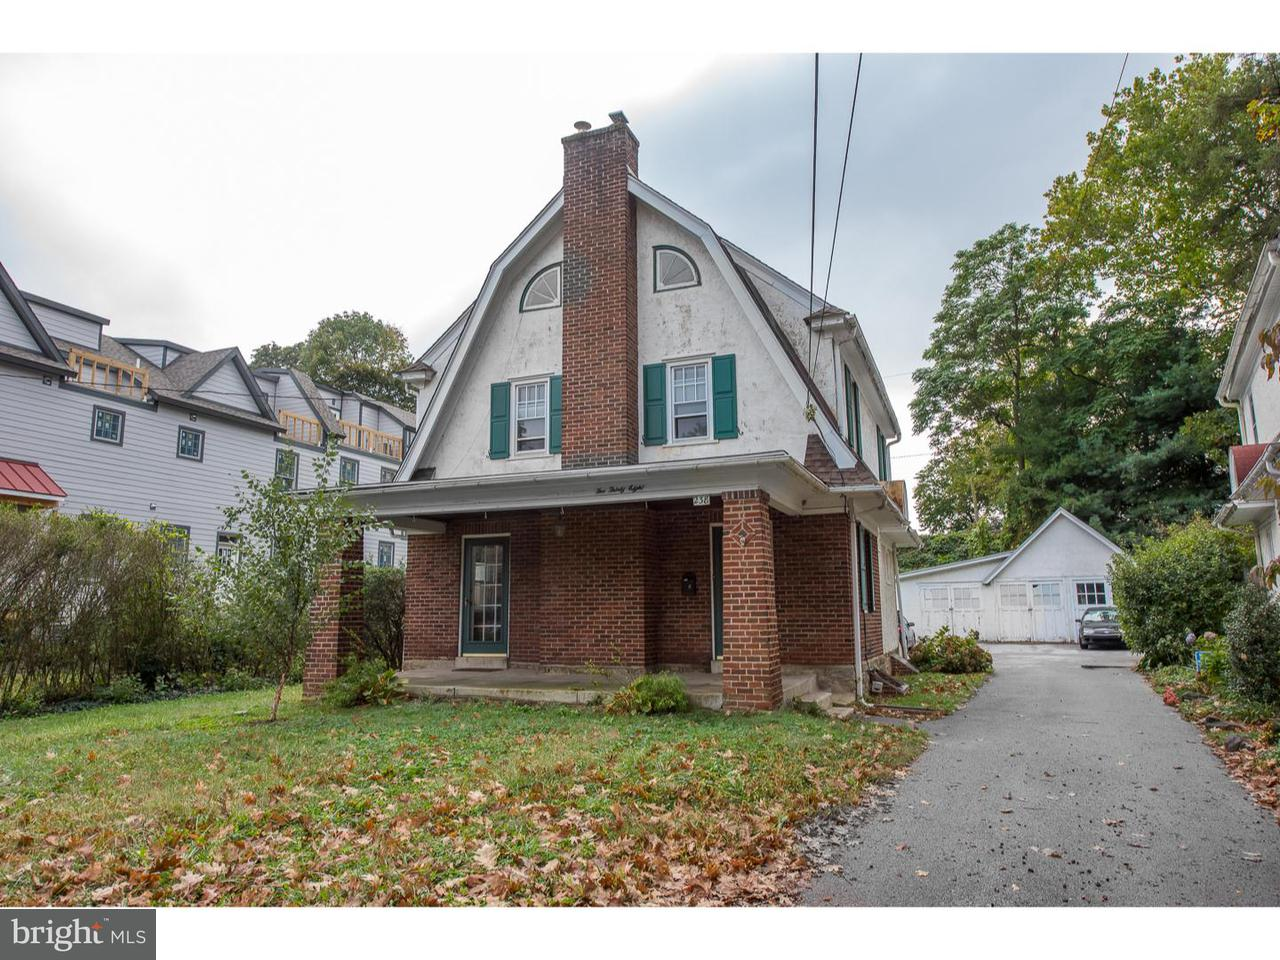 238 W Montgomery Haverford, PA 19041